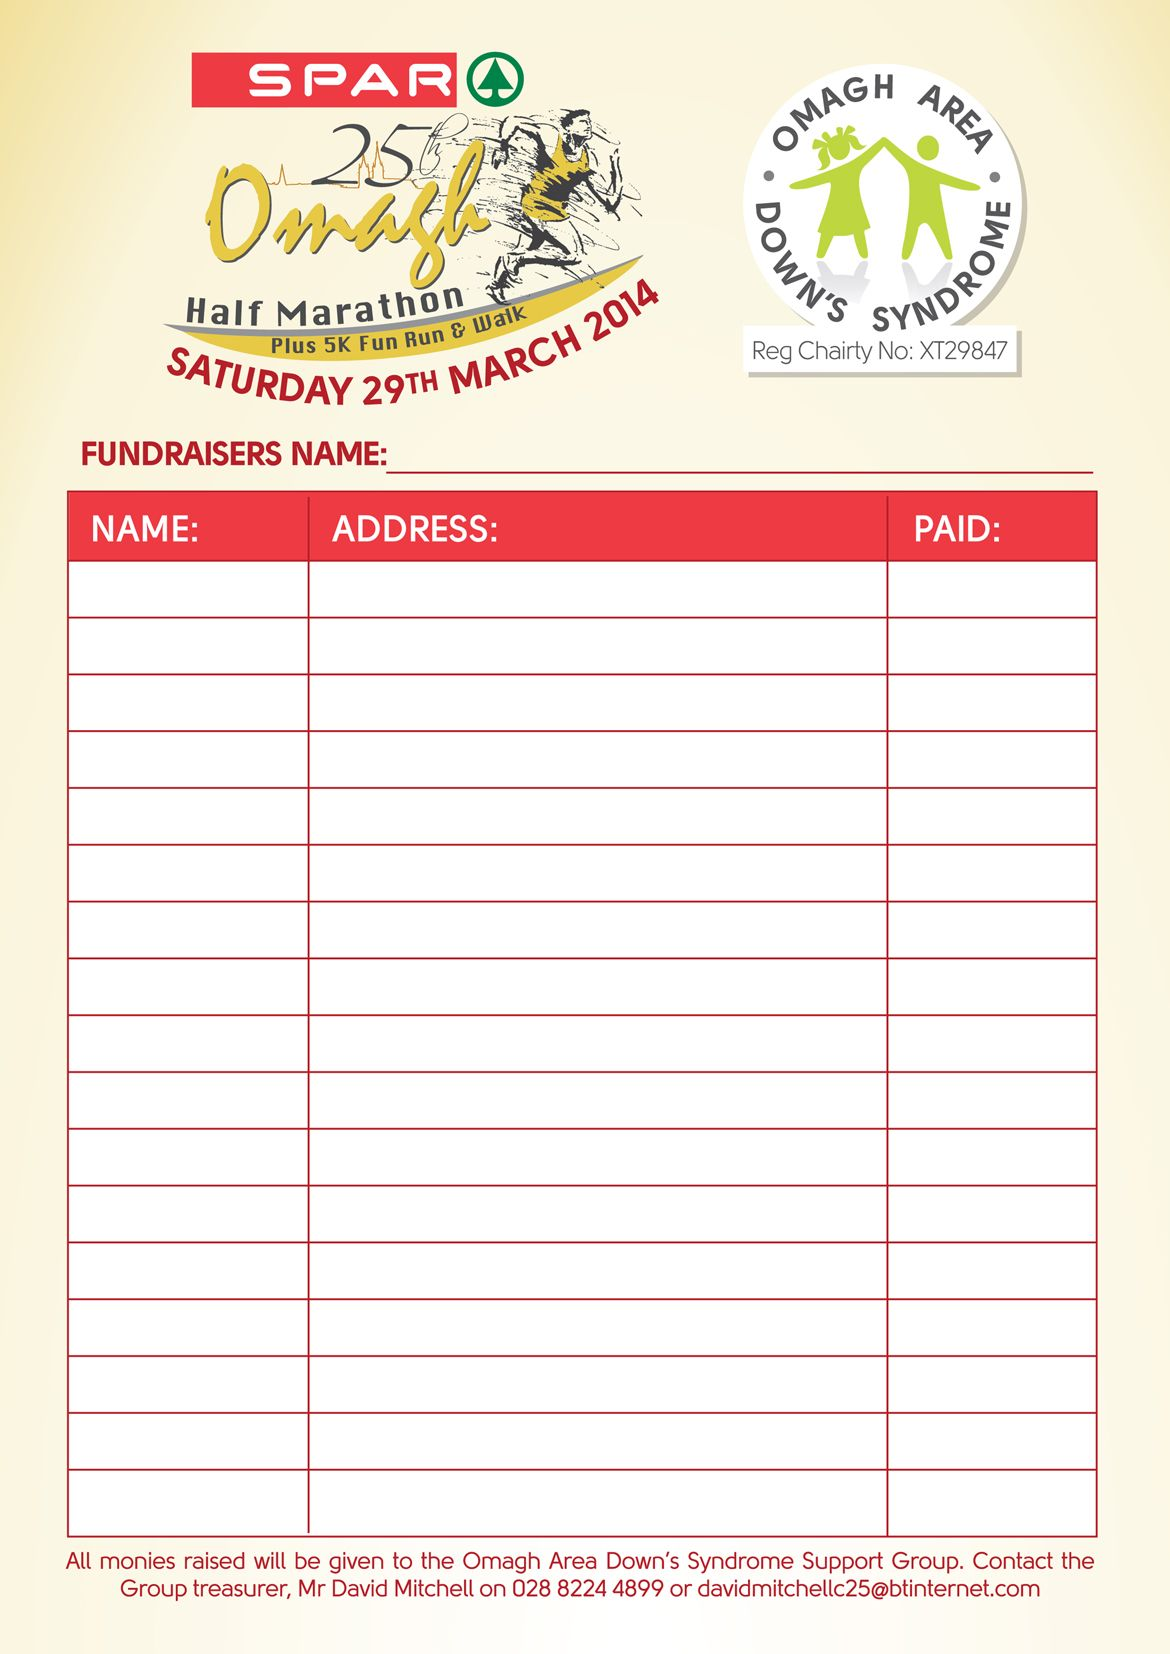 5k Run Registration Form Template Invitation Templates – Sponsored Walk Form Template